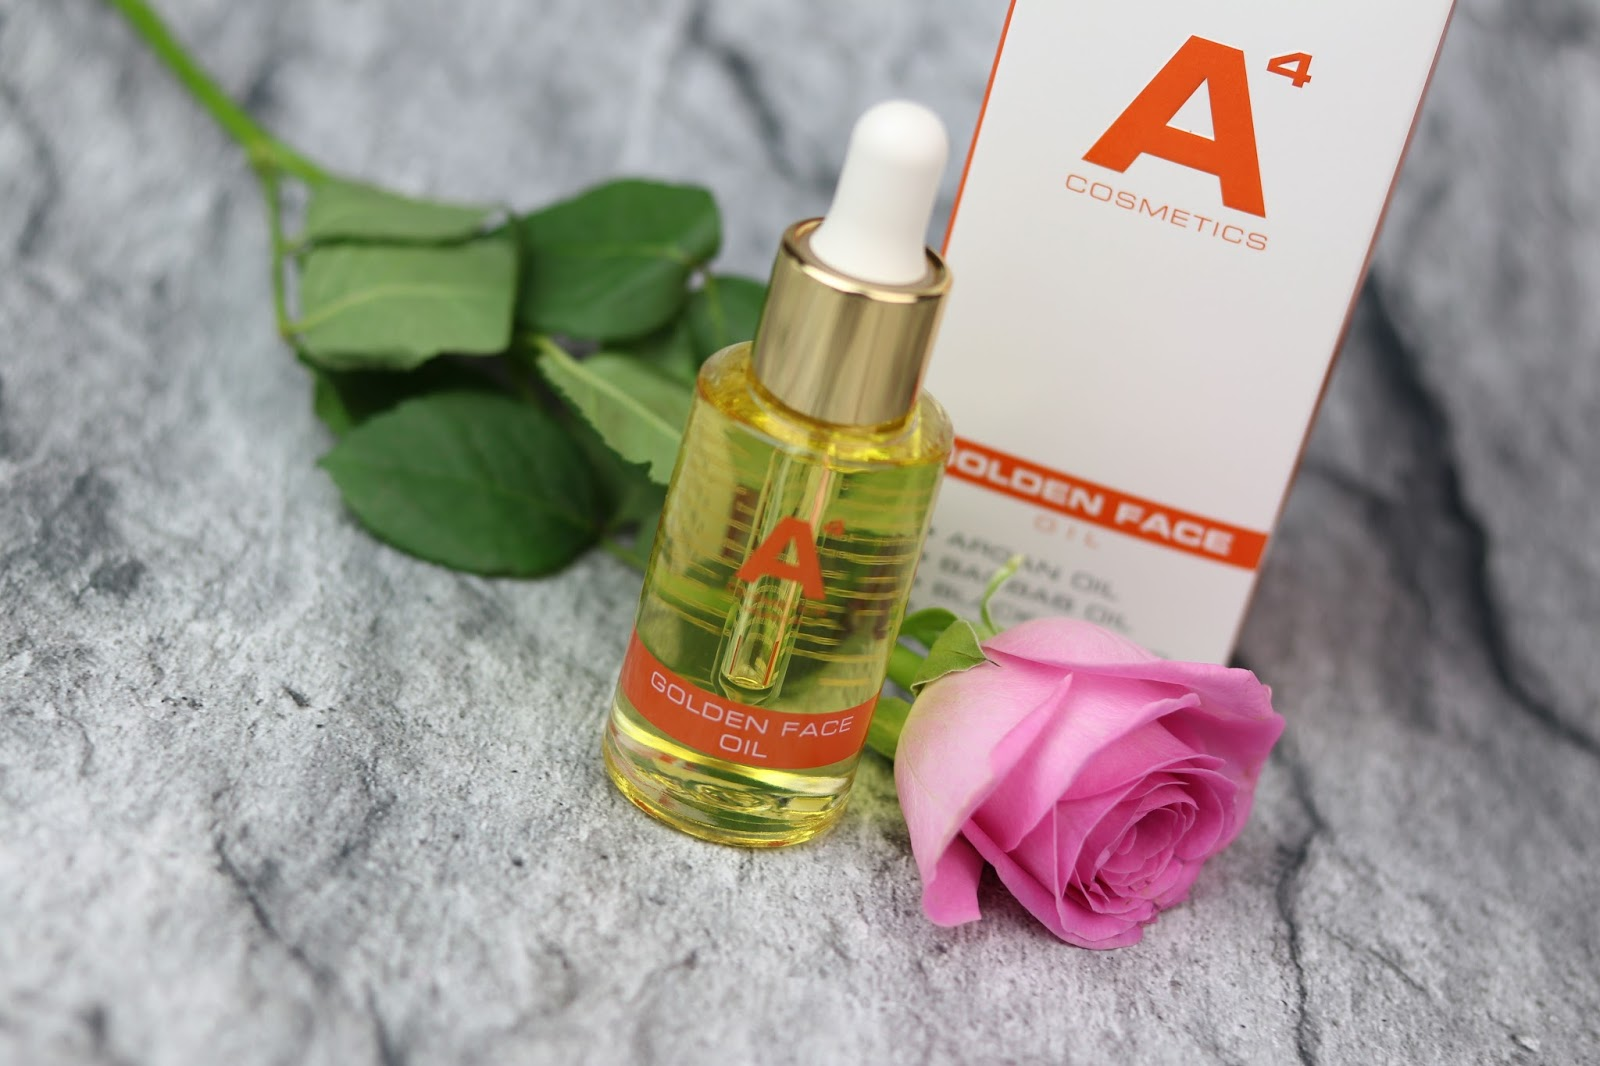 A4 Golden Face Oil, aloe vera, beauty blogger hamburg, beautybox, beautypress news box februar 2018, gesichtspflege, hautpflege, inhalt, merz, naturkosmetik, newsbox, produkte, review, tetesept, trockene haut,